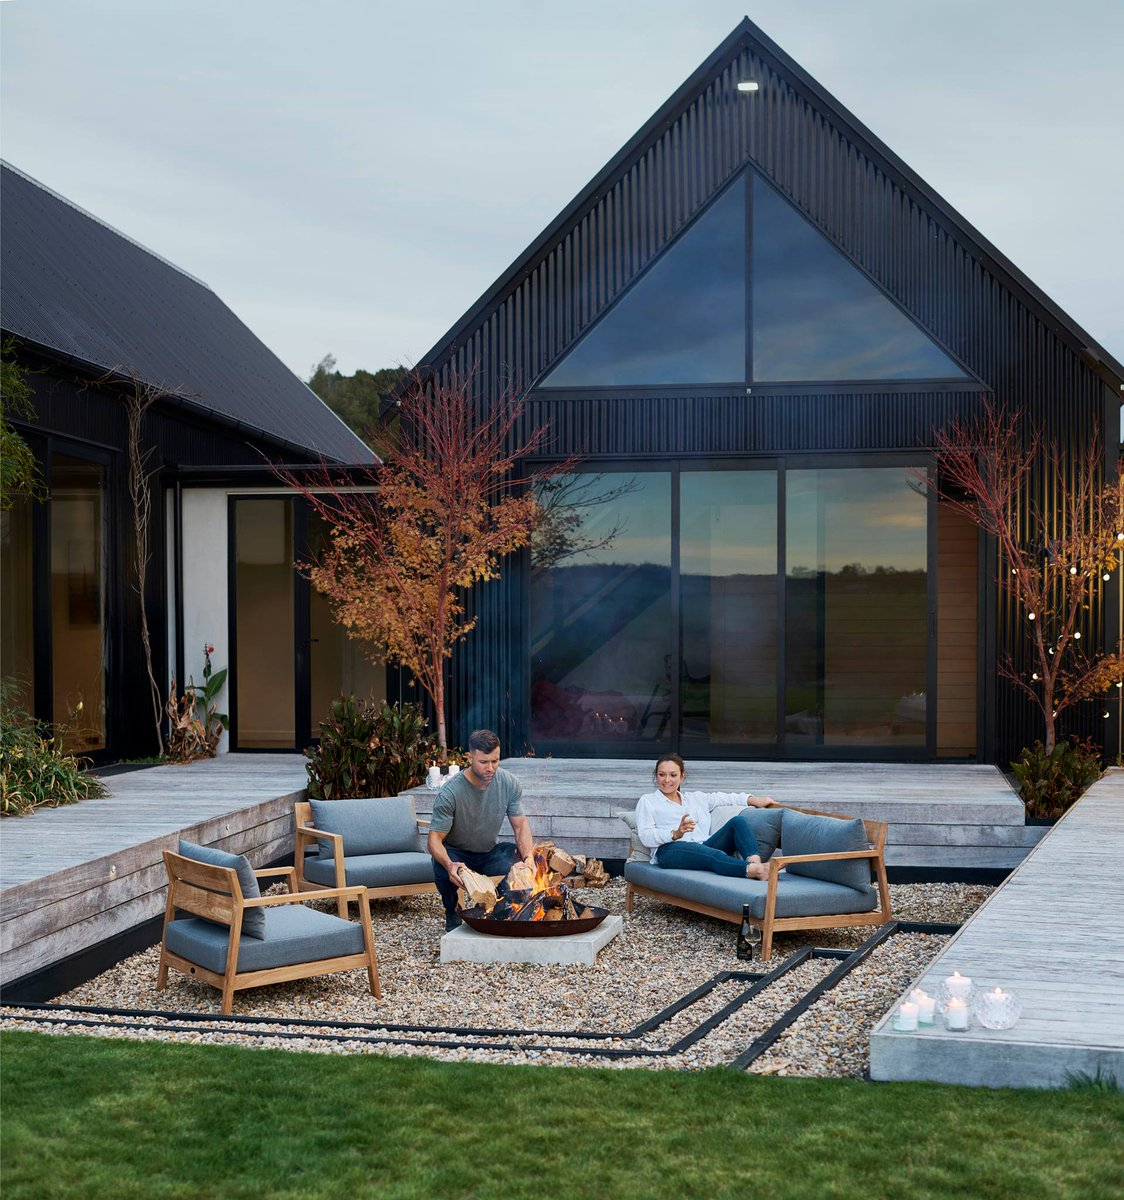 #Devon uses Teak which is an extremely durable tropical hardwood timber.  It'll survive for many years outdoors with little or no structural deterioration, thanks to its high water-resistant quality.  See the range: https://bit.ly/2LGbtEg  #Poynters #OutdoorLiving pic.twitter.com/cljcakeRLV